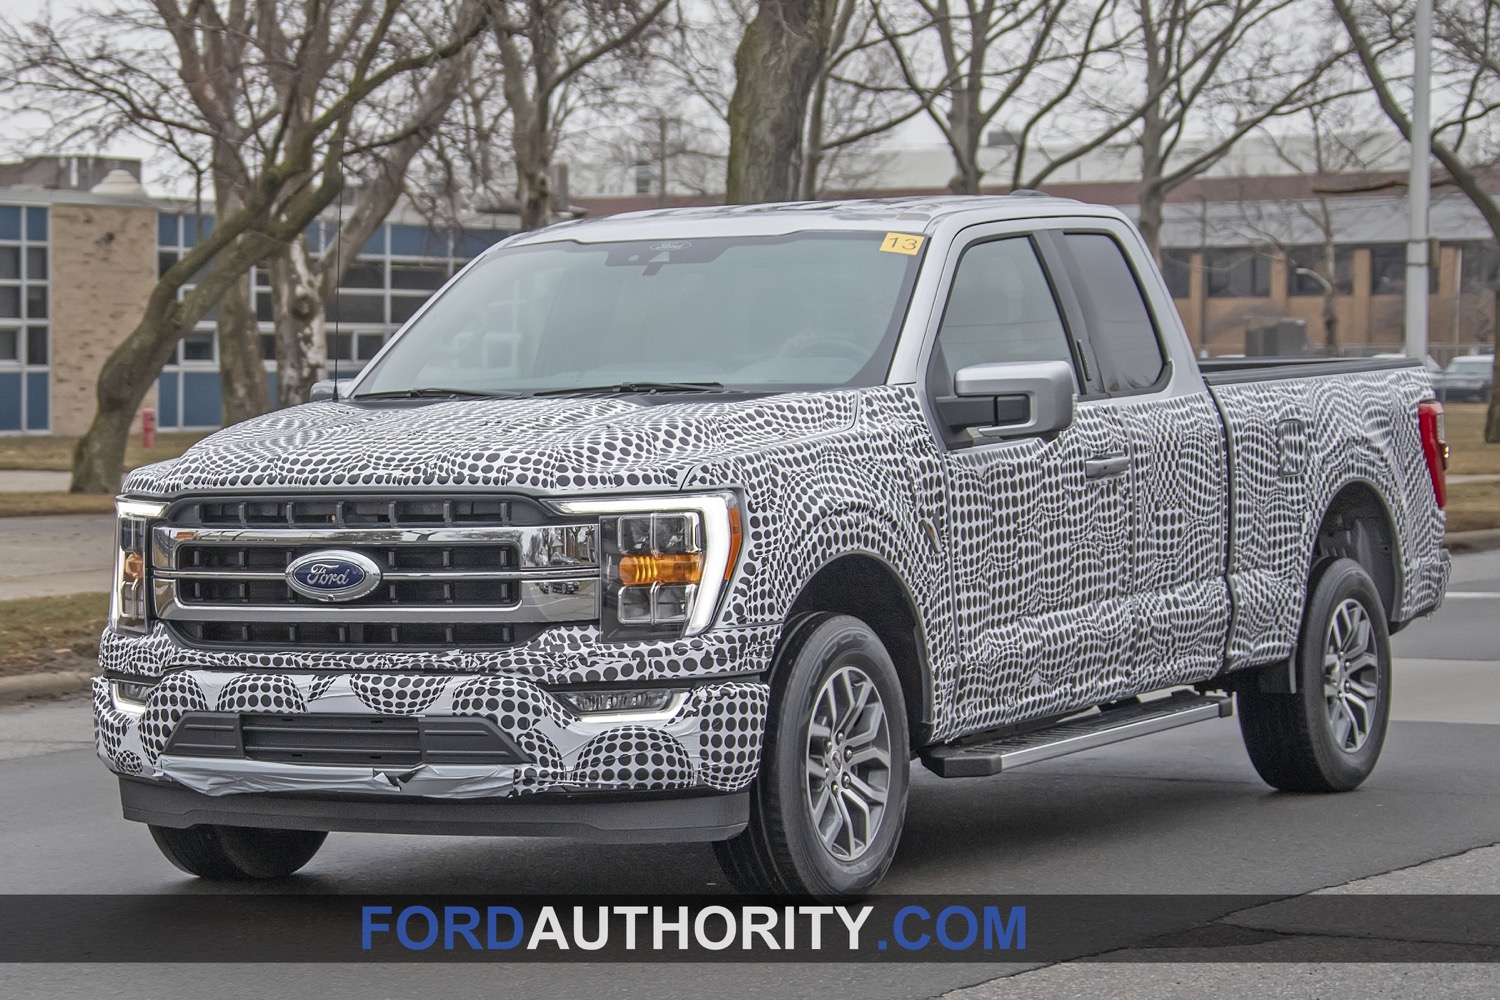 2013 F150 Headlights >> Spotted: Lariat or XLT 2021 F150? | 2021+ Ford F-150 Forum ...